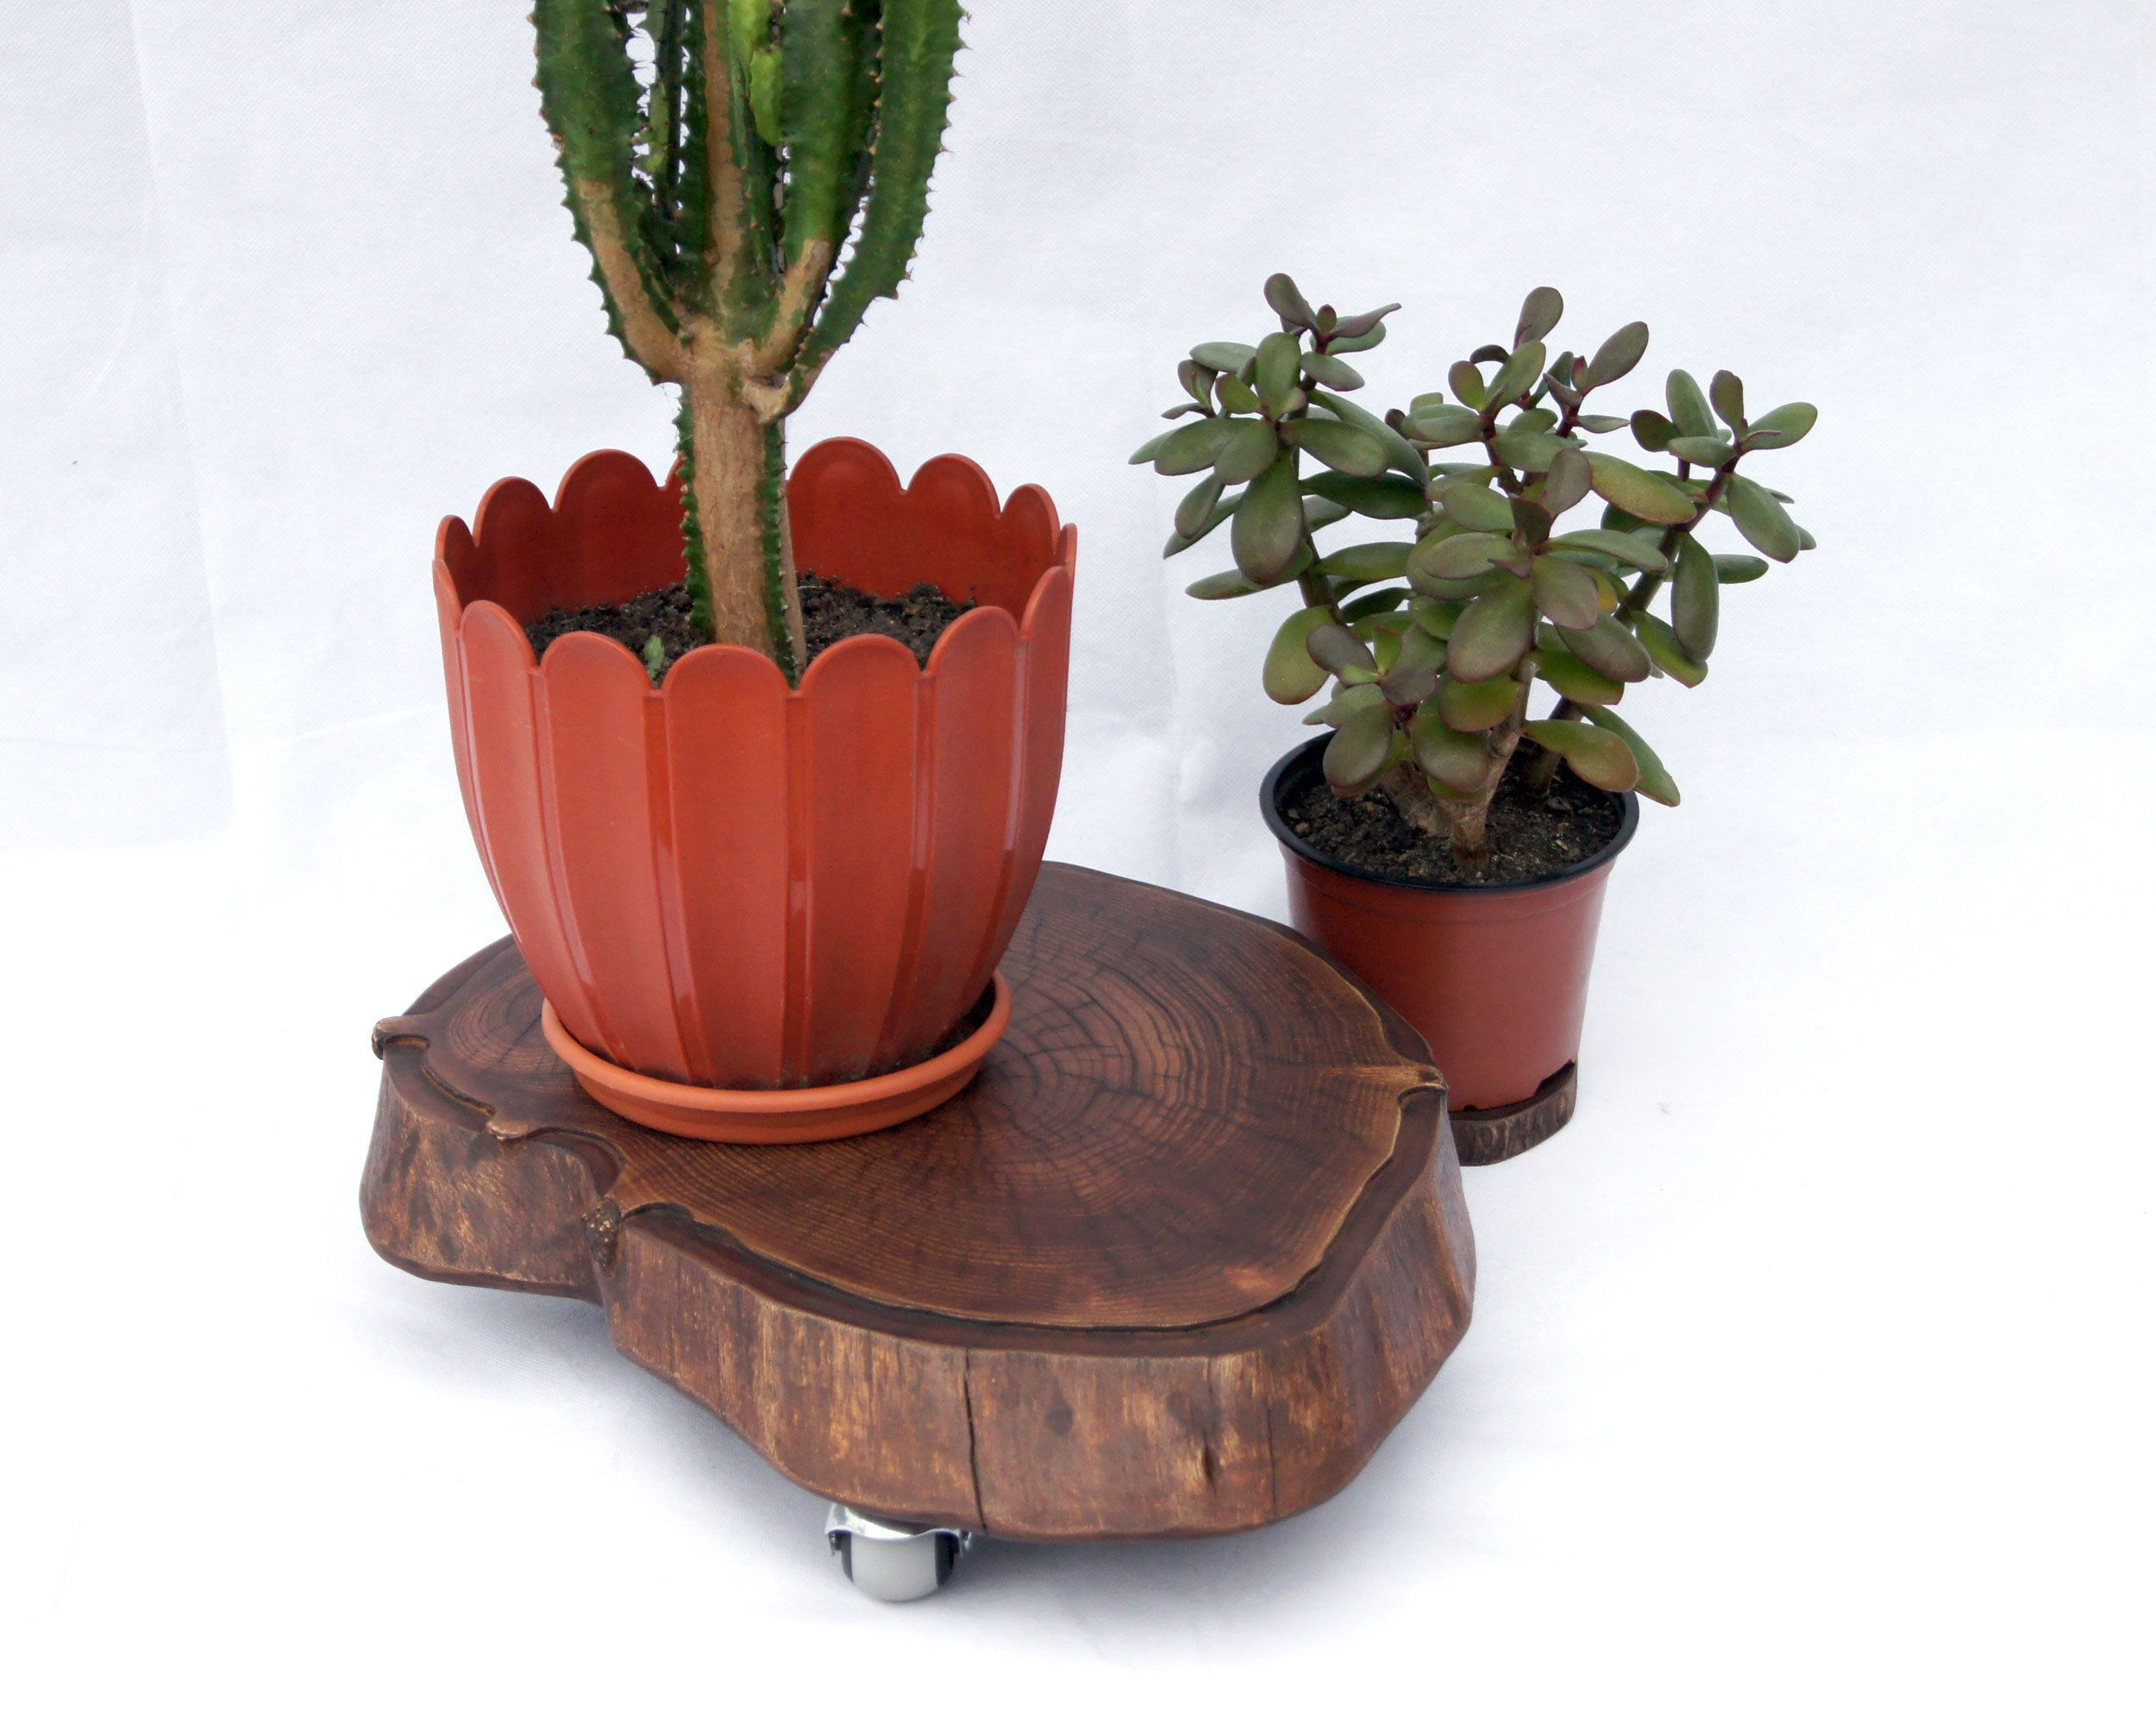 Live Edge Wood Slab Plant Stand Wth Wheels Large Plant Stand Indoor Tree Stump Planter Stand Wooden Pla In 2020 Plant Stand Indoor Painted Plant Pots Large Flower Pots